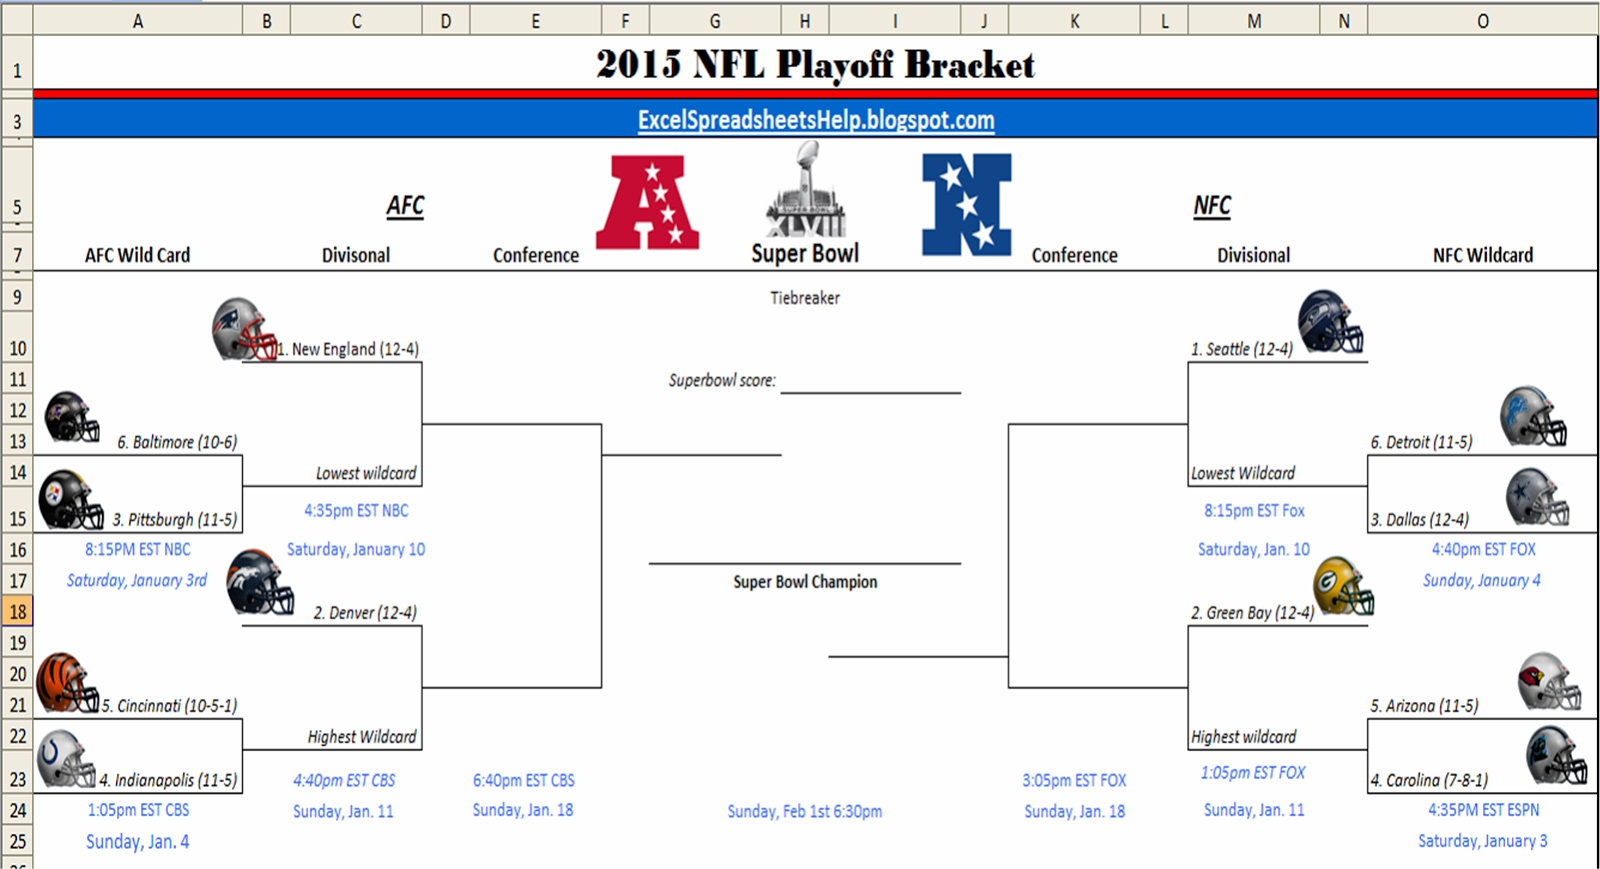 image relating to Nfl Playoff Brackets Printable identified as Excel Spreadsheets Assistance: Printable 2015 NFL Playoff Bracket